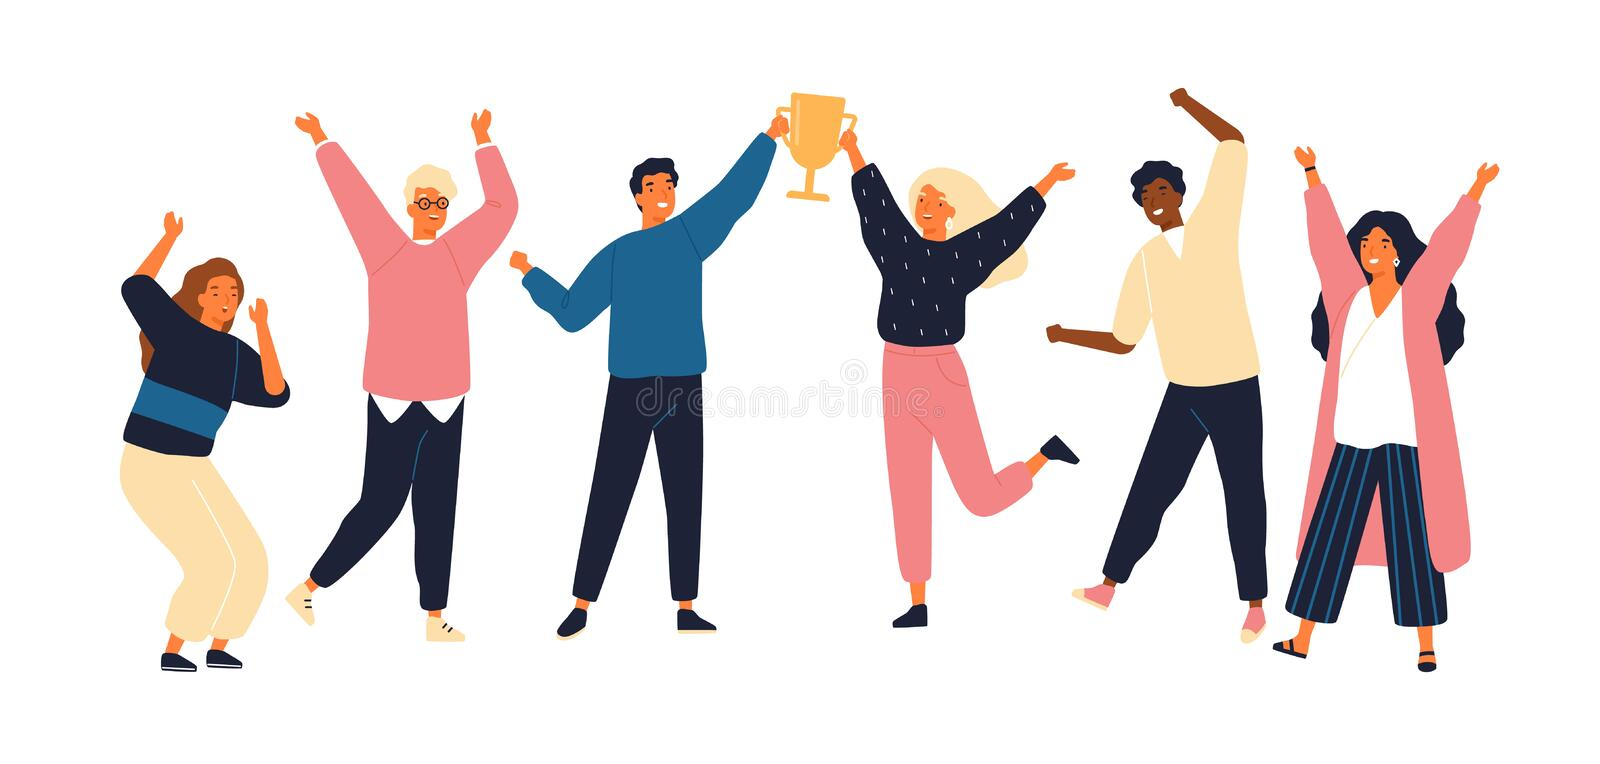 Group of young joyful people with champion cup isolated on white background. Happy positive men and women celebrating. Victory and rejoicing together royalty free illustration